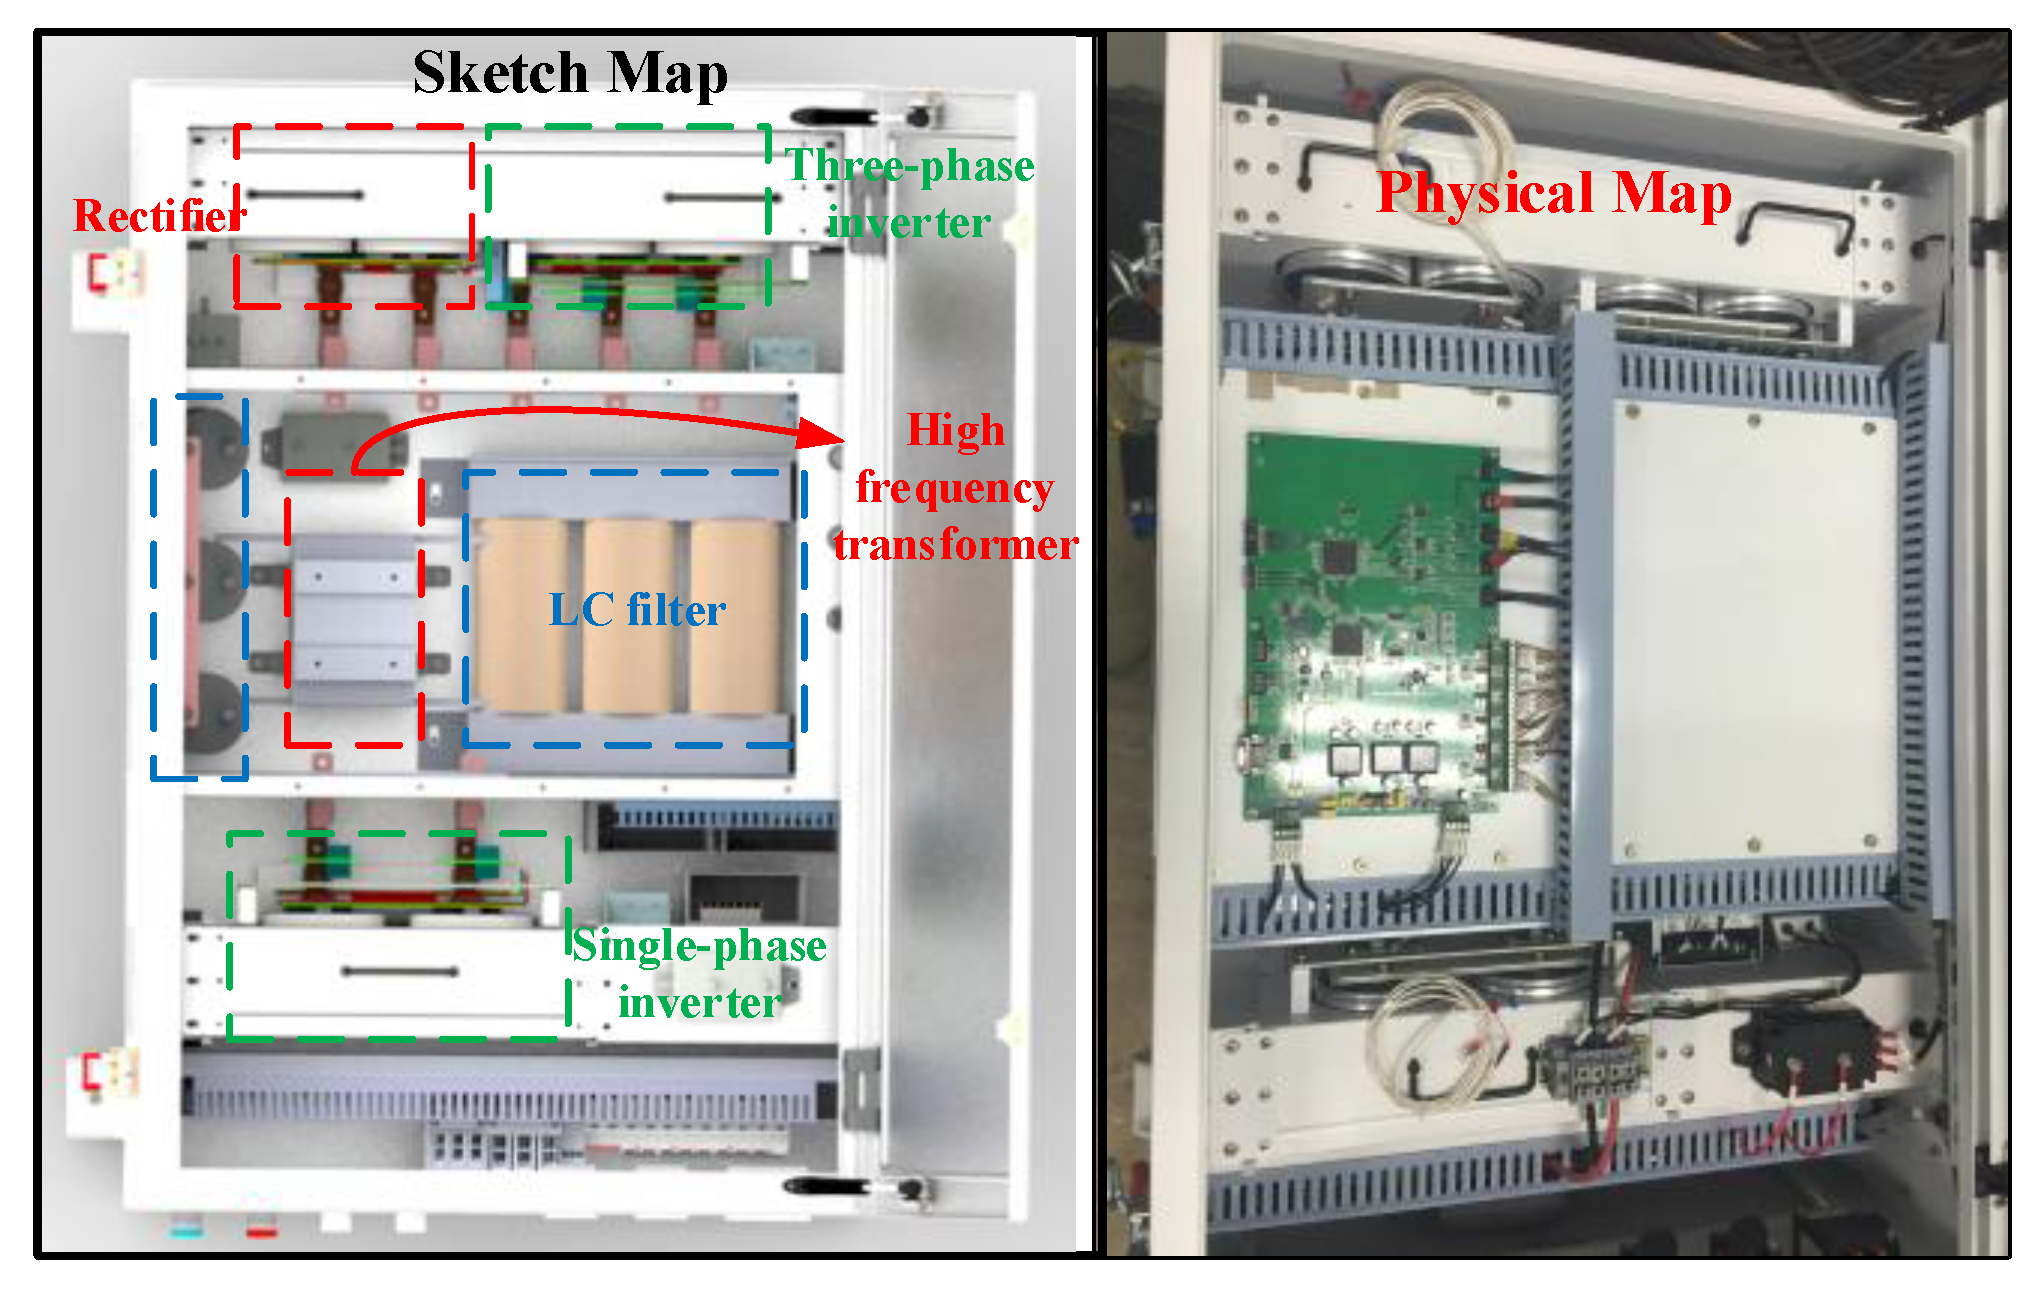 Energies Free Full Text Loss Model And Efficiency Analysis Of High Frequency Inverter Circuit Diagram Buy 10 02018 G015